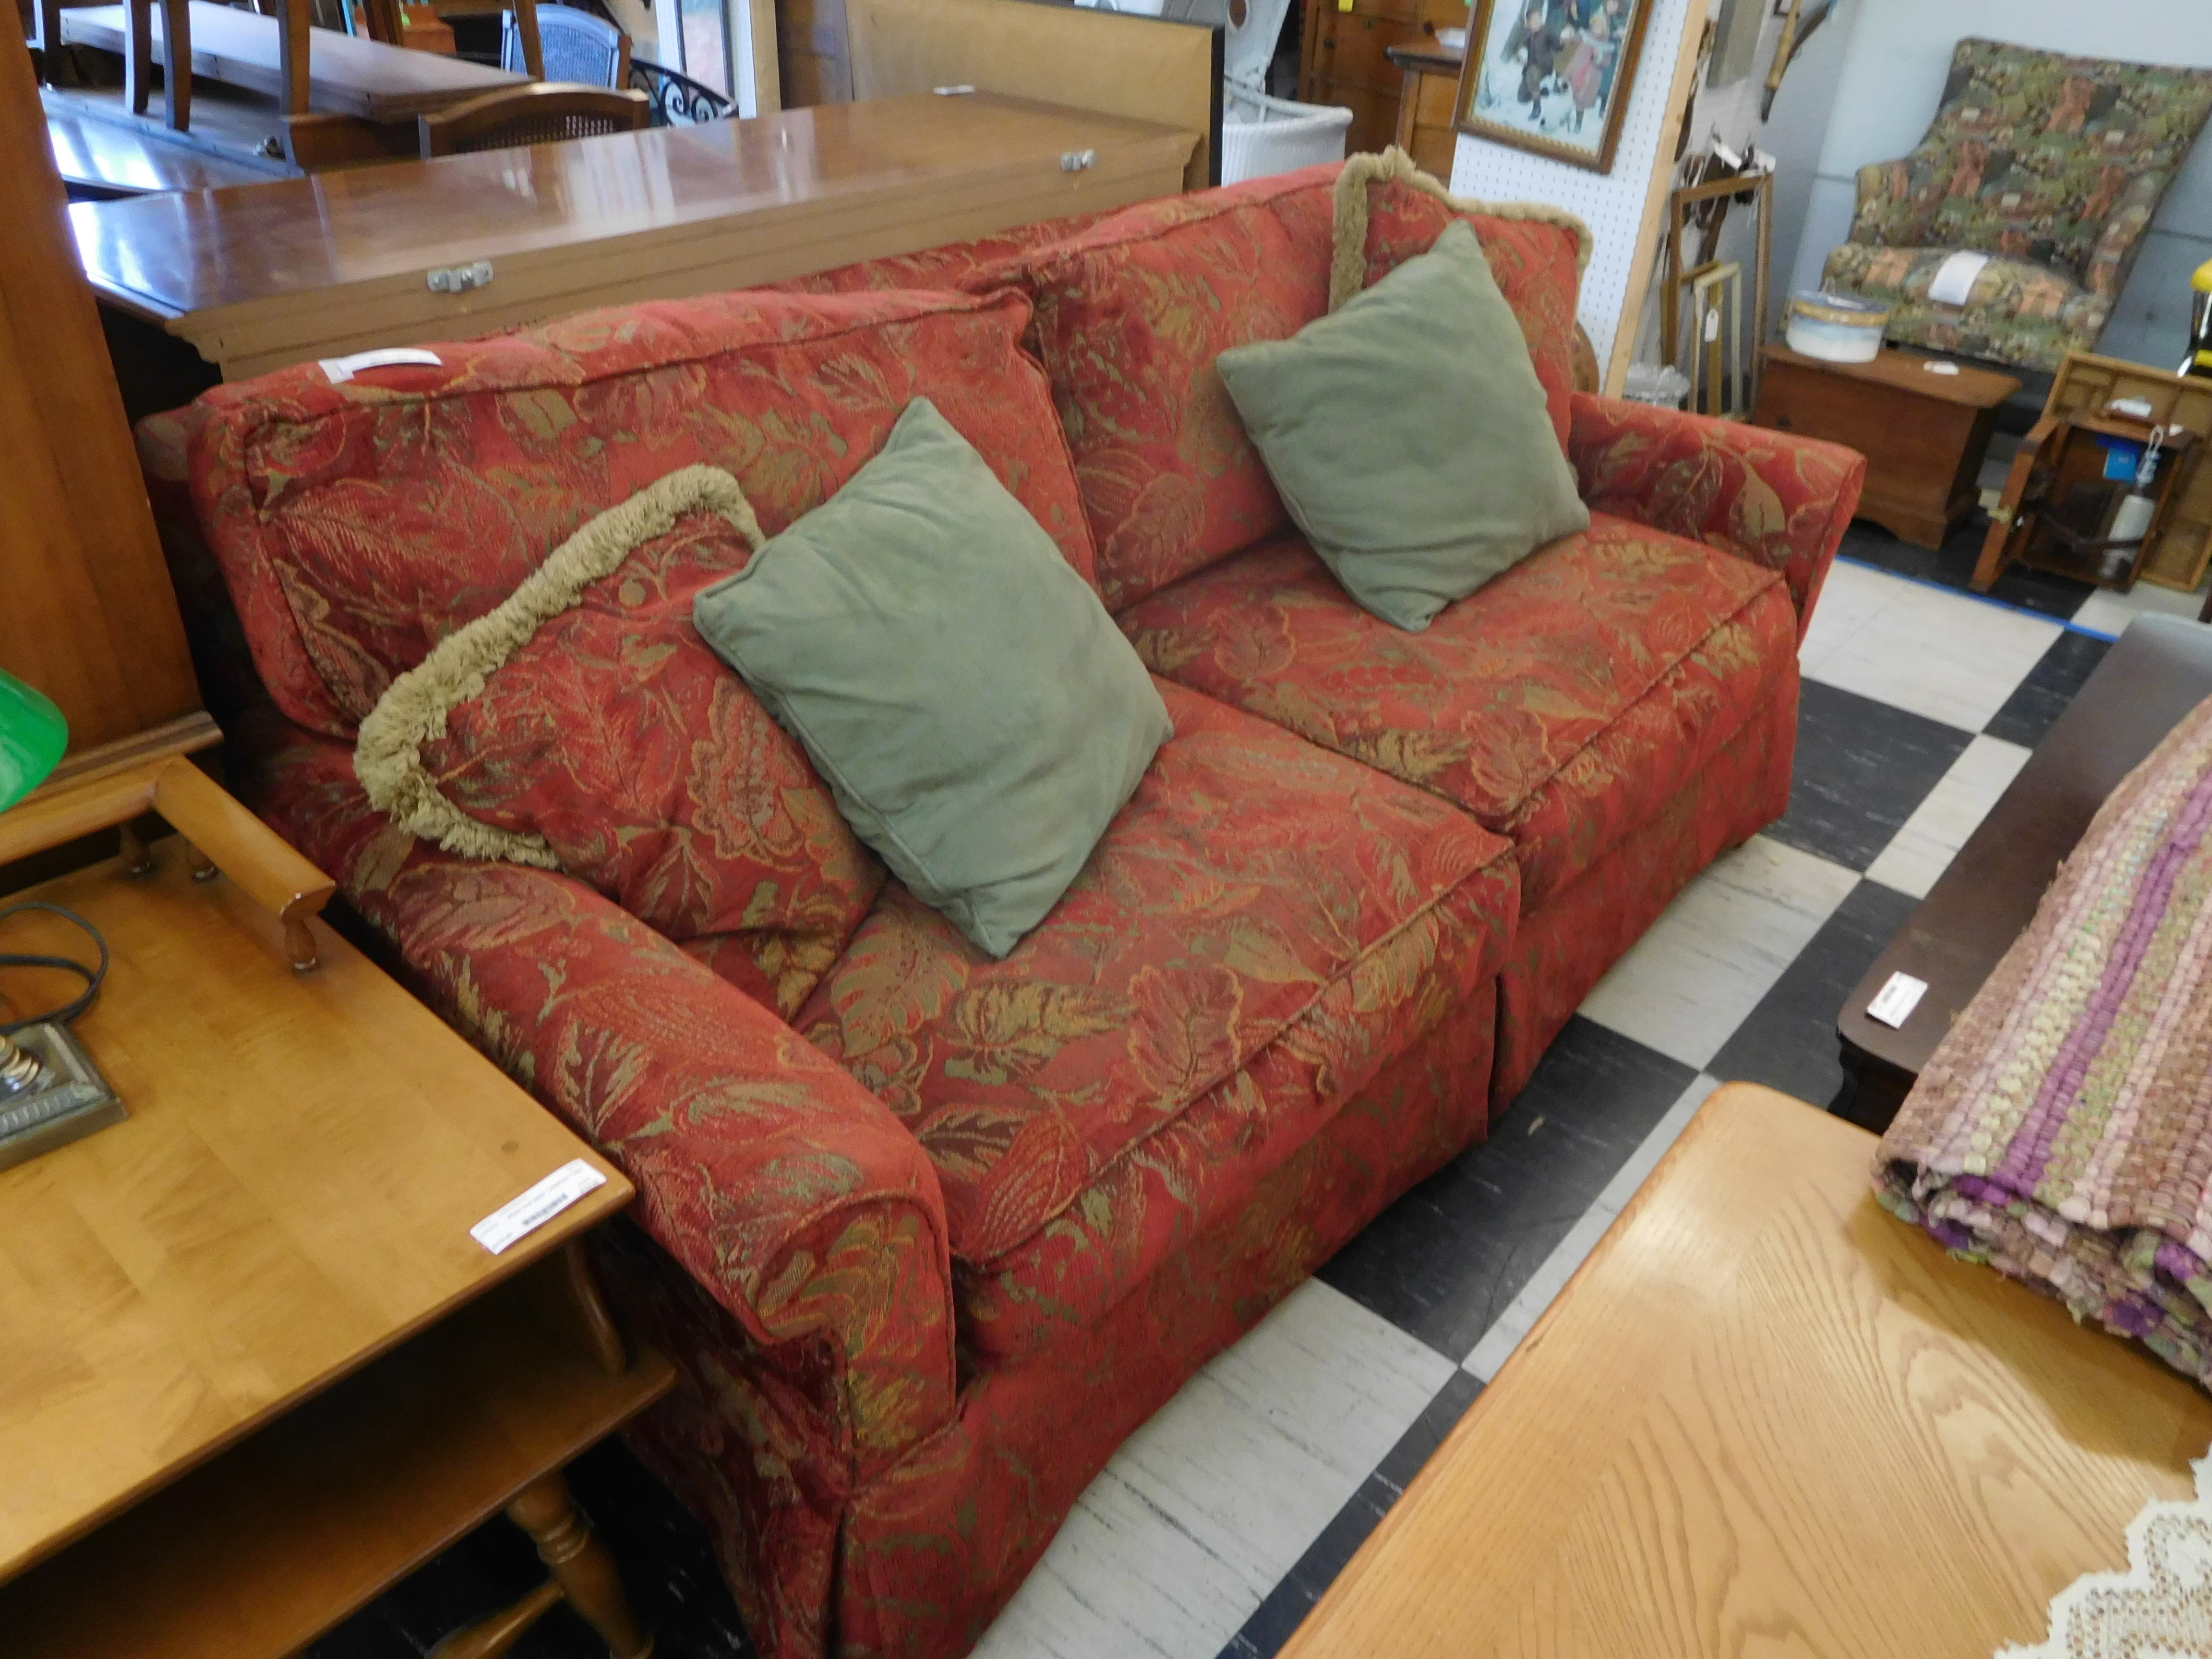 Reddish Sofa with Leaf Patterned Upholstery and Matching Pillows